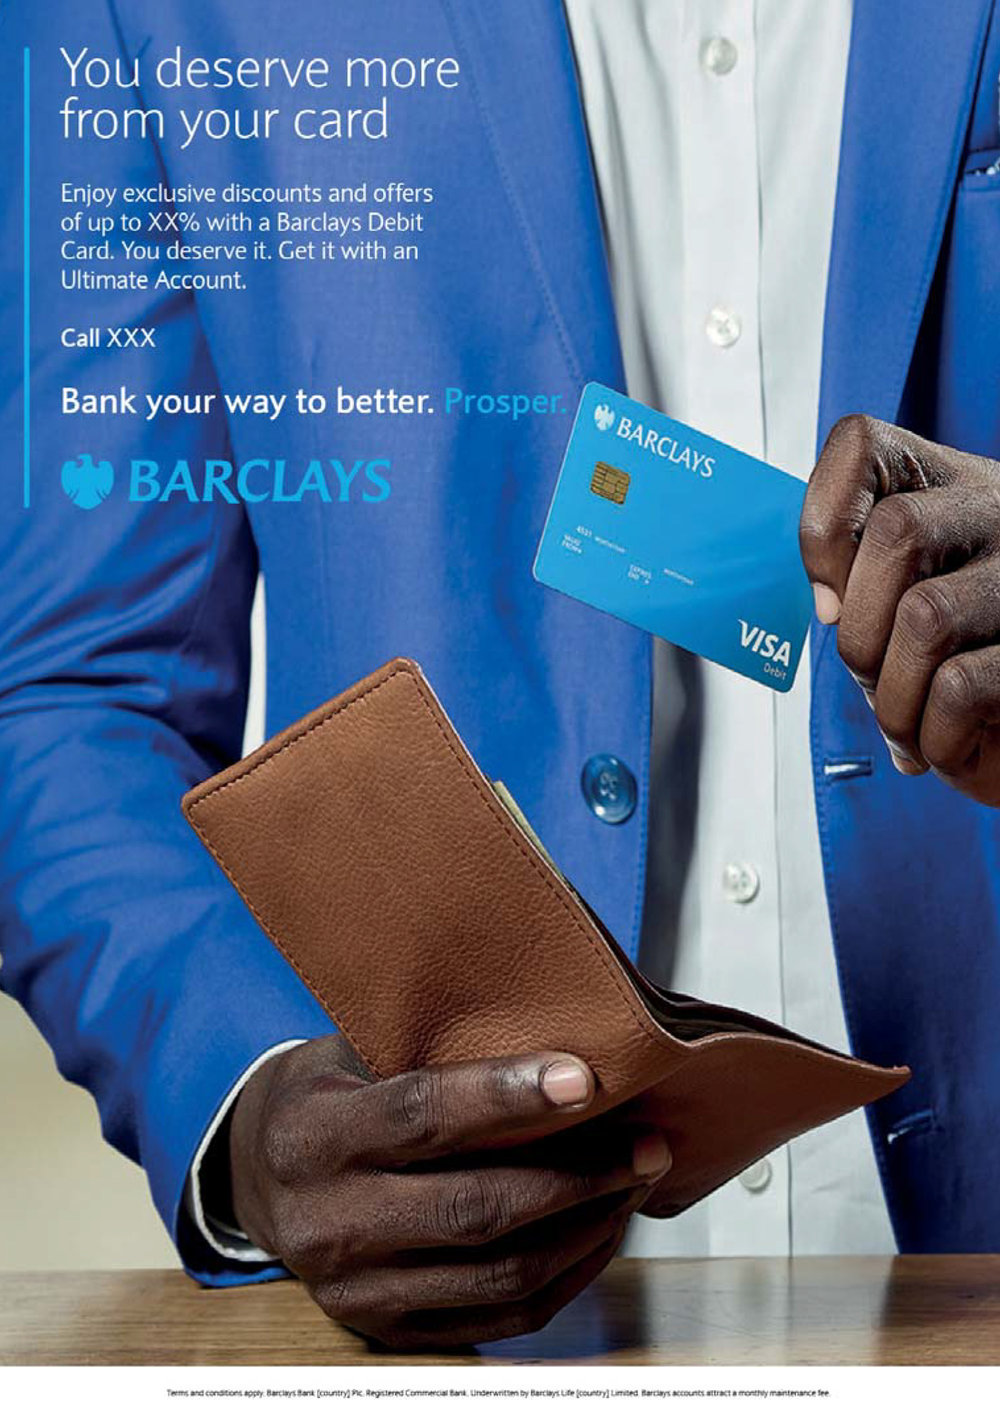 Barclays Personal Banking Campaign Toolkit 26 APRIL-105.jpg